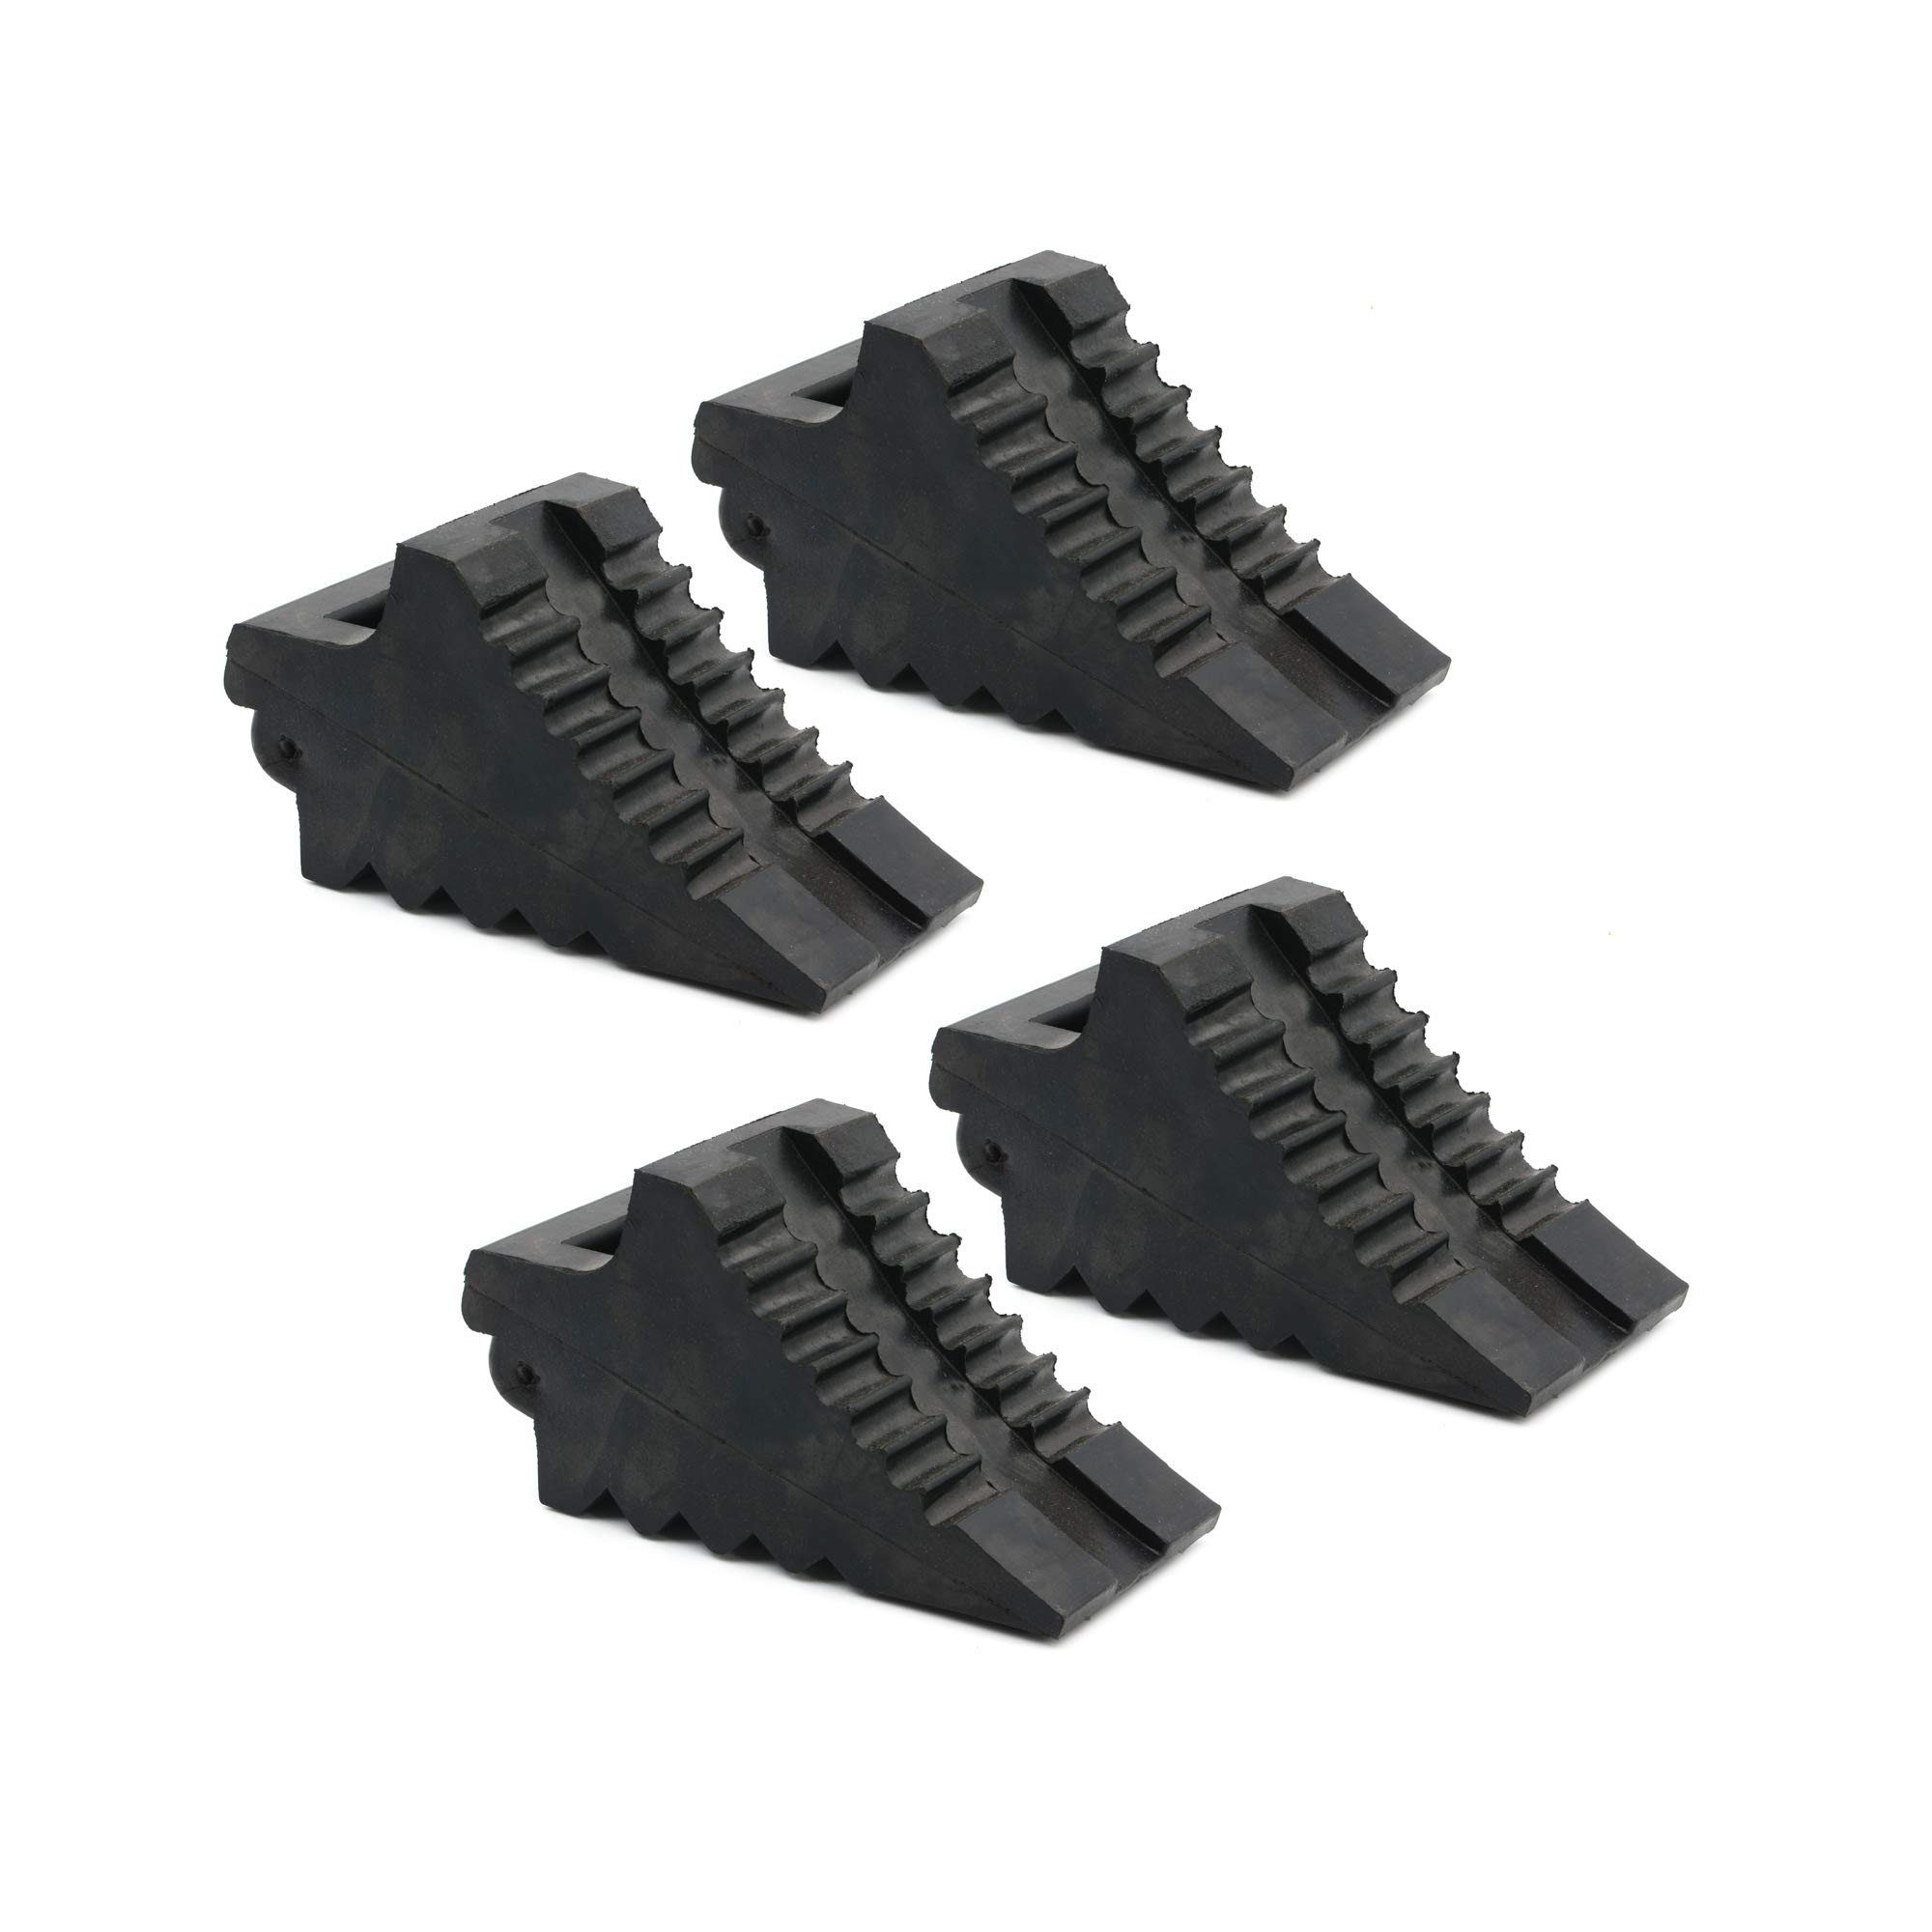 AFA Chock Blocks (4 Pcs) Rubber Dual Wheel Tire Chocks Front and Back for Camper, Trailer, RV, Truck, Car and ATV - Best Heavy Duty Vehicle Wedge Design with Handle and Garage Grip Bottom by AFA Tooling Approved for Automotive